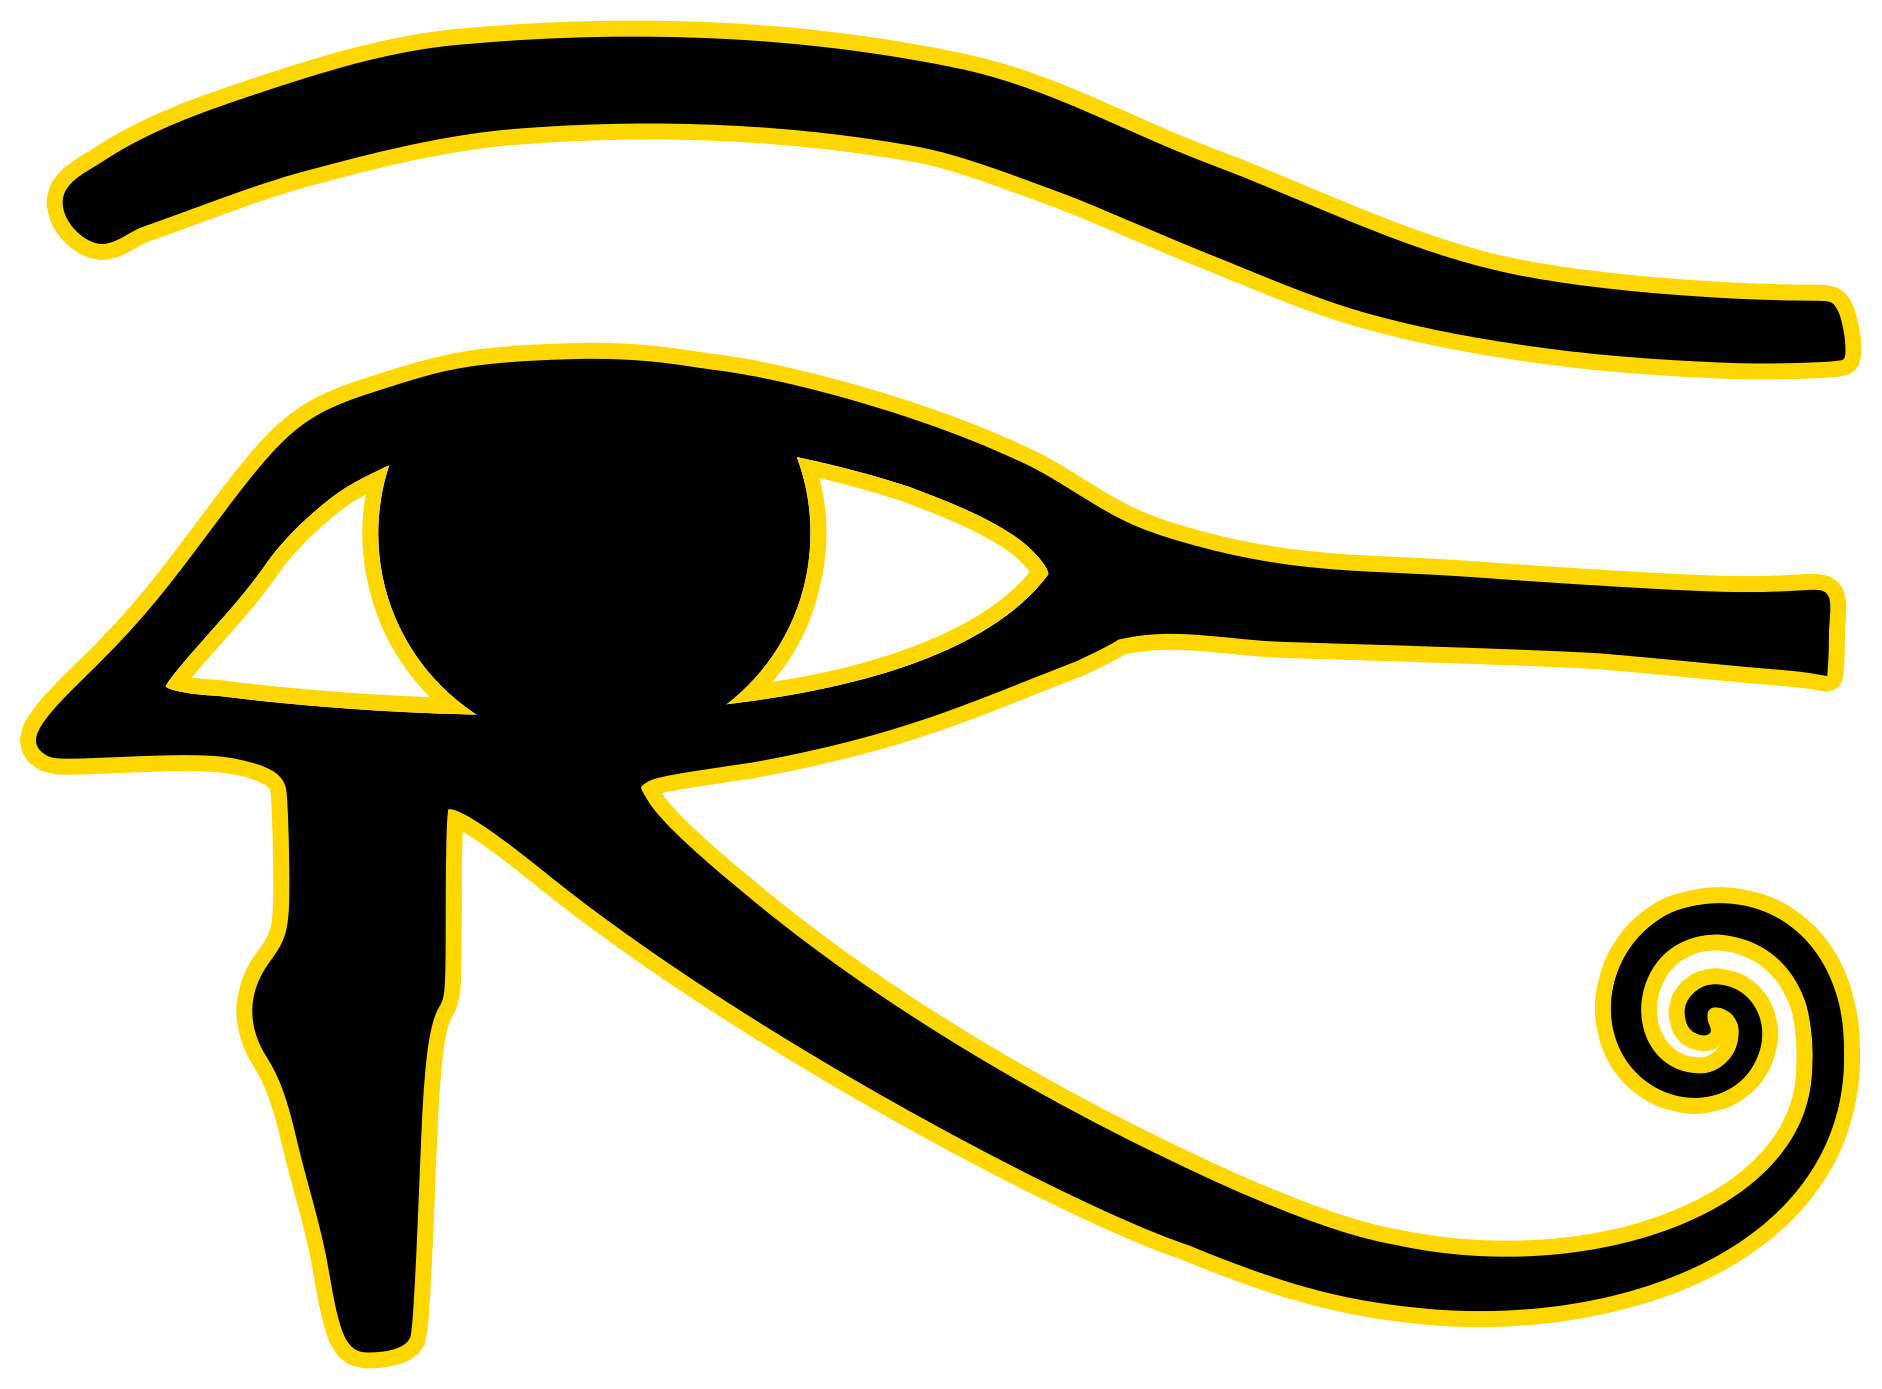 Eye of Horus - Left - I am using this in the most general sense of being a Pagan eye symbol. I love this symbol, and it appeared to me in golden laser light with my eyes closed after a particularly dramatic lucid dream. So I use with respect for whoever sent me that symbol.  Their technology is way over my head. They have total stealth, total telepathy, artificial general superintelligence and unlimited computing power. They can render any conceivable scene or situation in the most expert and dramatic and entertaining of ways. Expert lighting.  Expert coloring. Expert costumes. Expert casting of dream characters. Perfect modeling. Perfect looks. Perfect personalities. Expert direction. Expert special effects. Force fields and modified gravity. Time travel. Time reversal. Time control.